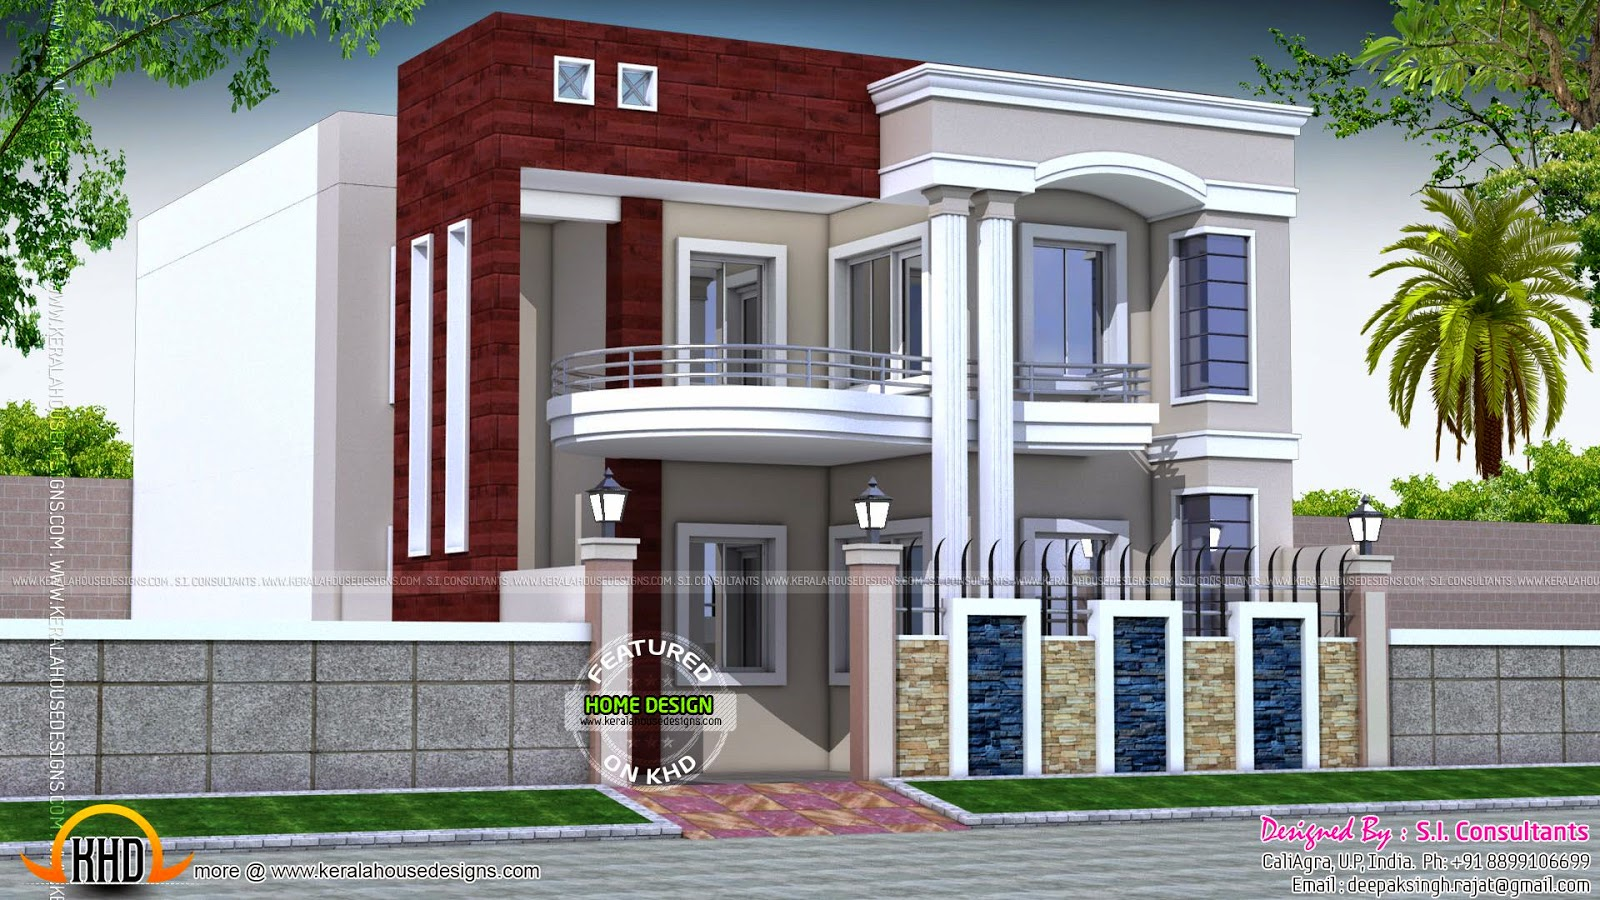 House design in north india kerala home design and floor plans Gorgeous small bedroom designs for indian homes